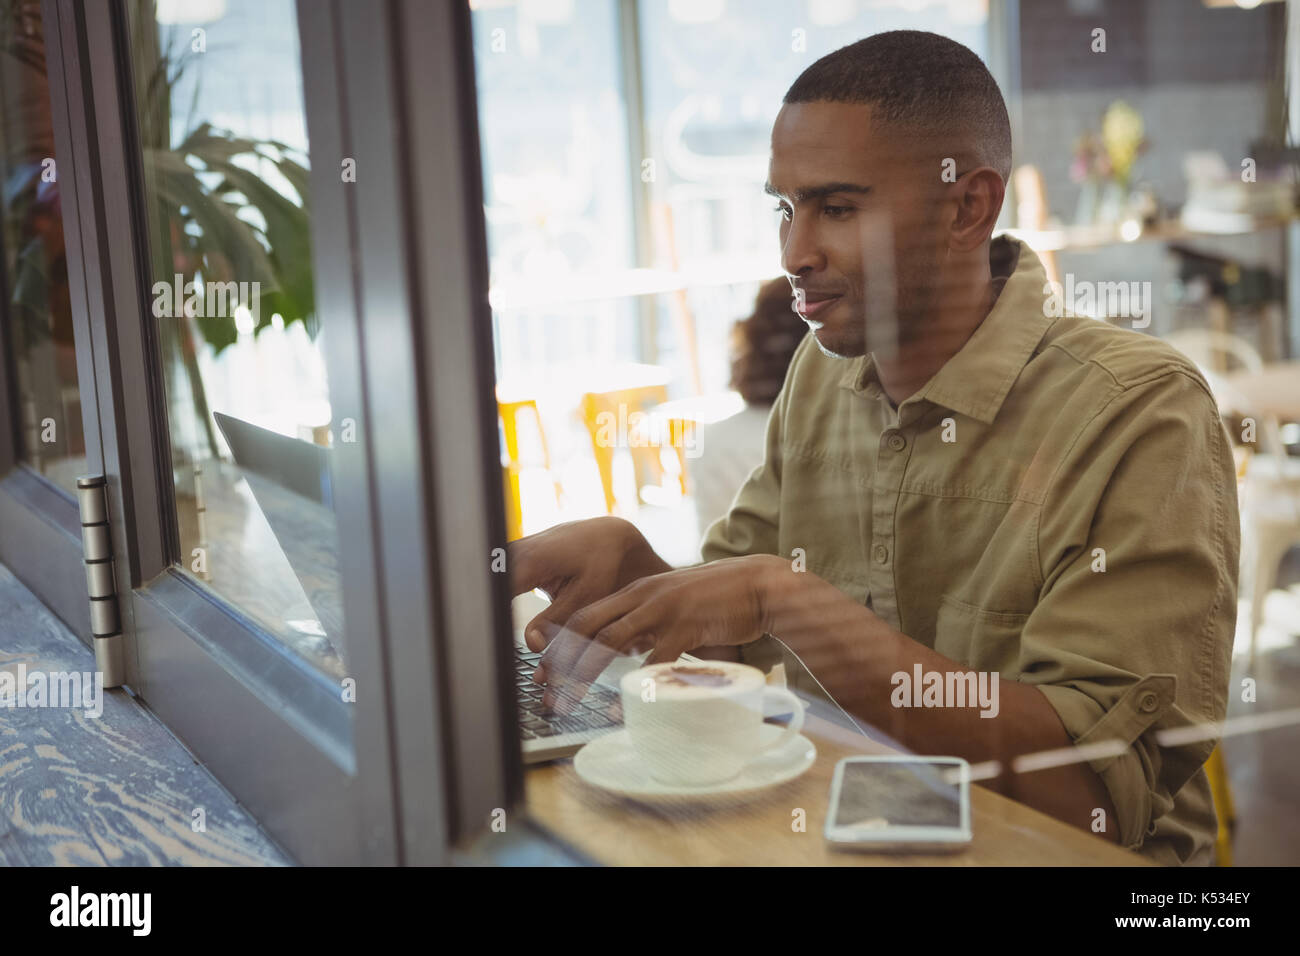 Young man using laptop seen through glass window at cafe - Stock Image